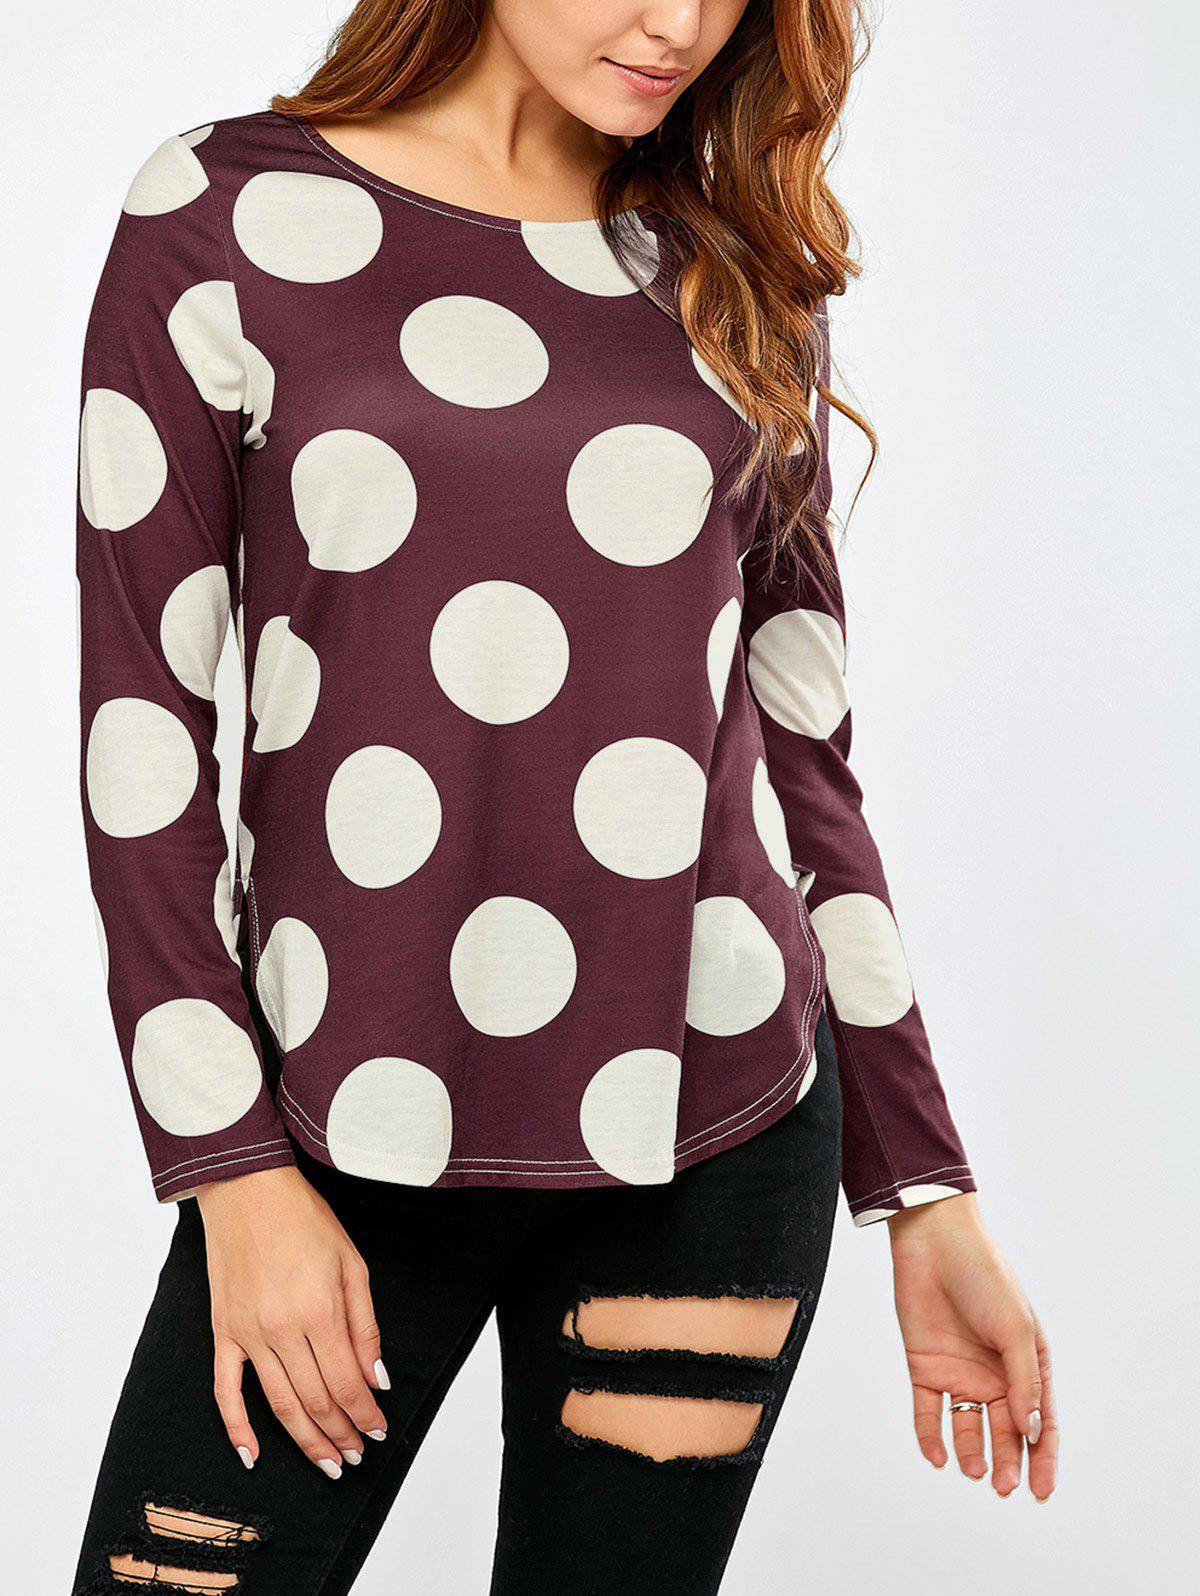 New Polka Dot High Low Hem T-Shirt